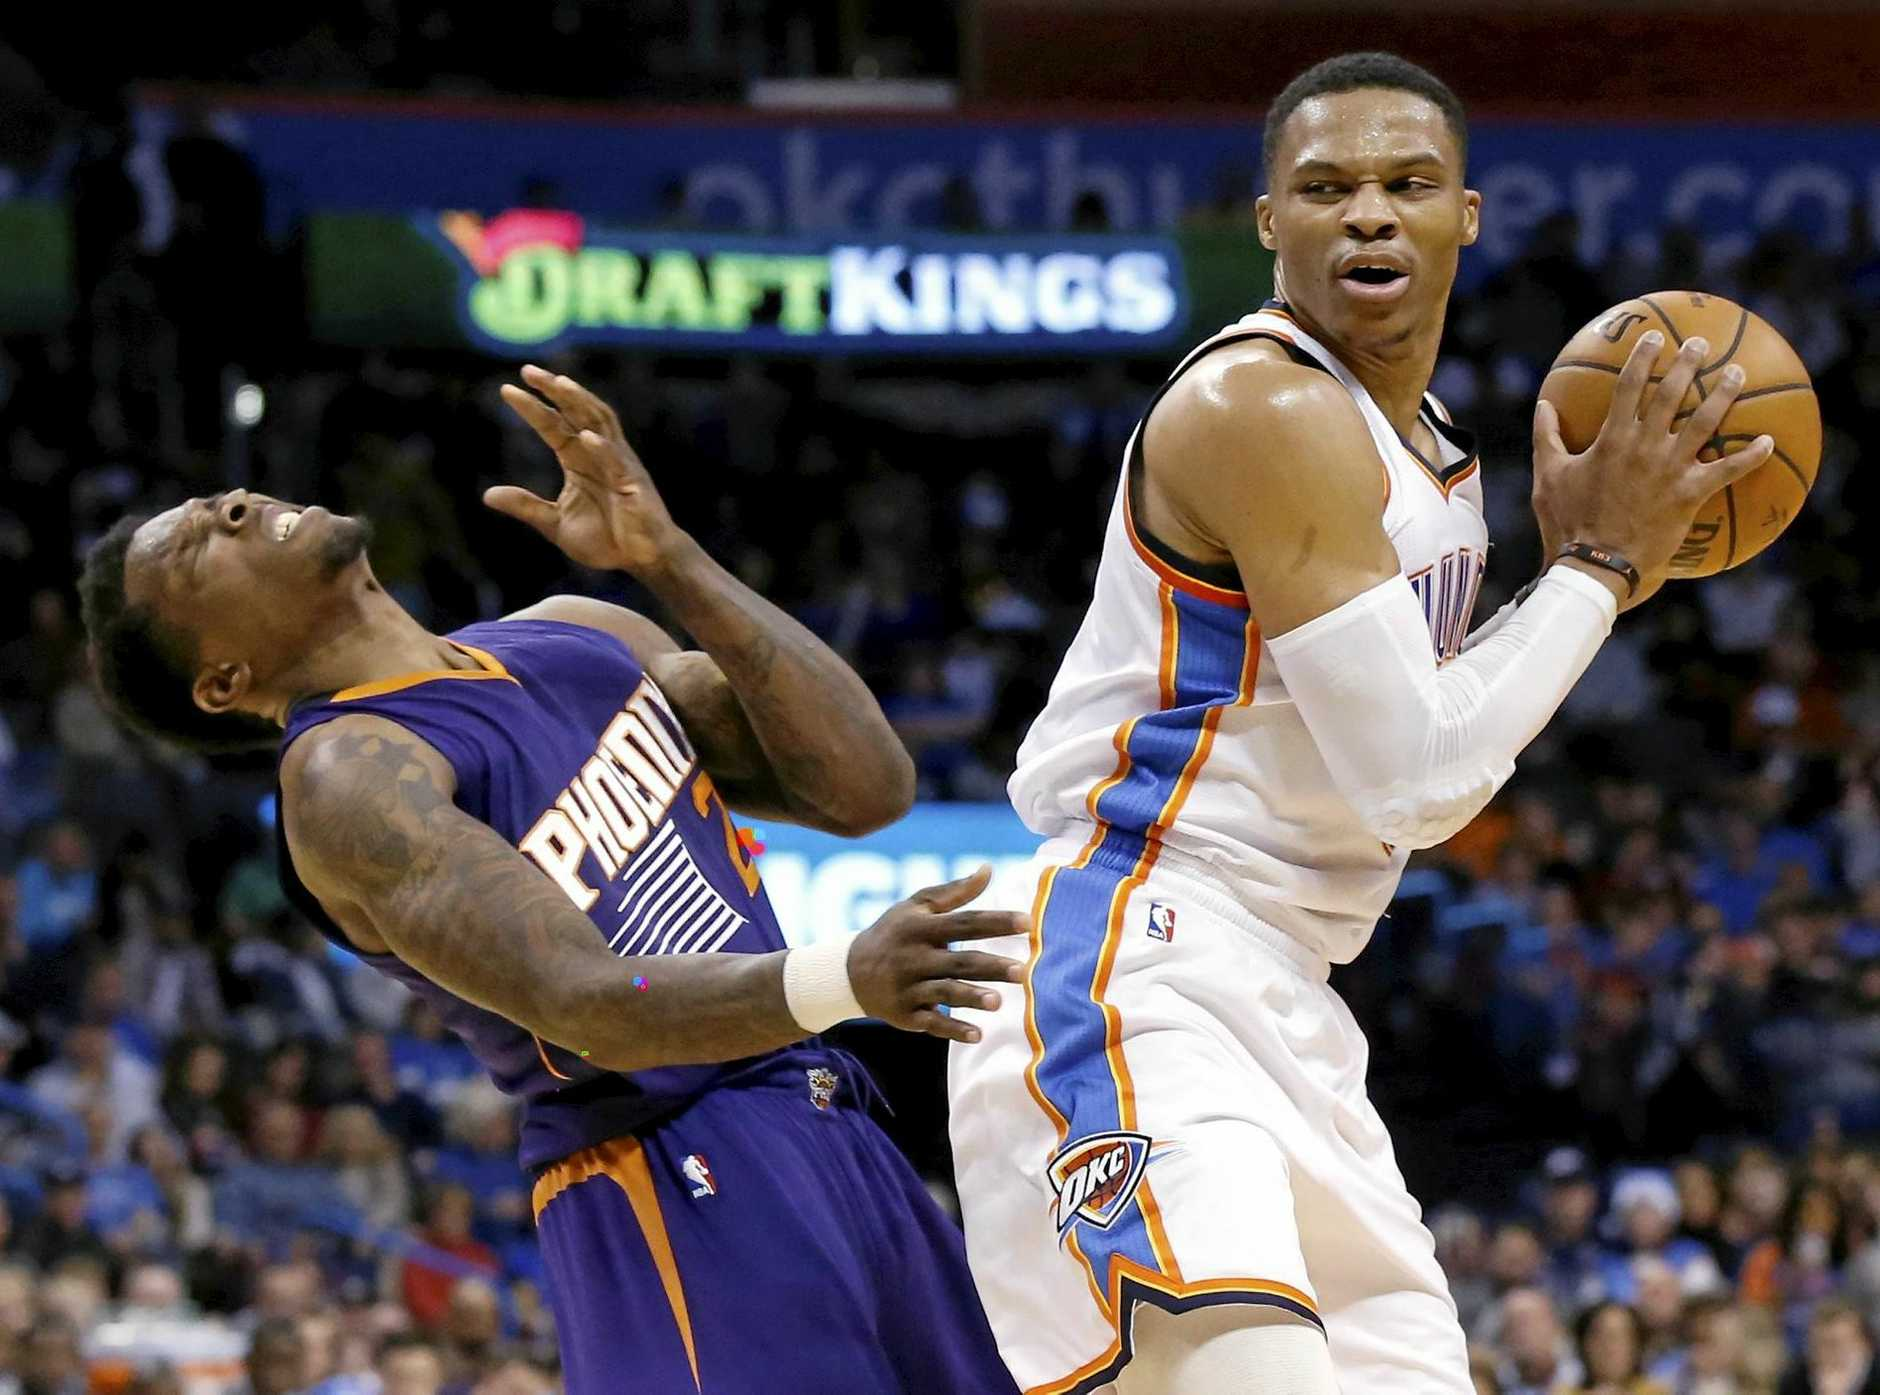 Phoenix Suns guard Eric Bledsoe (left) falls backwards following a clash with Oklahoma City Thunder guard Russell Westbrook.